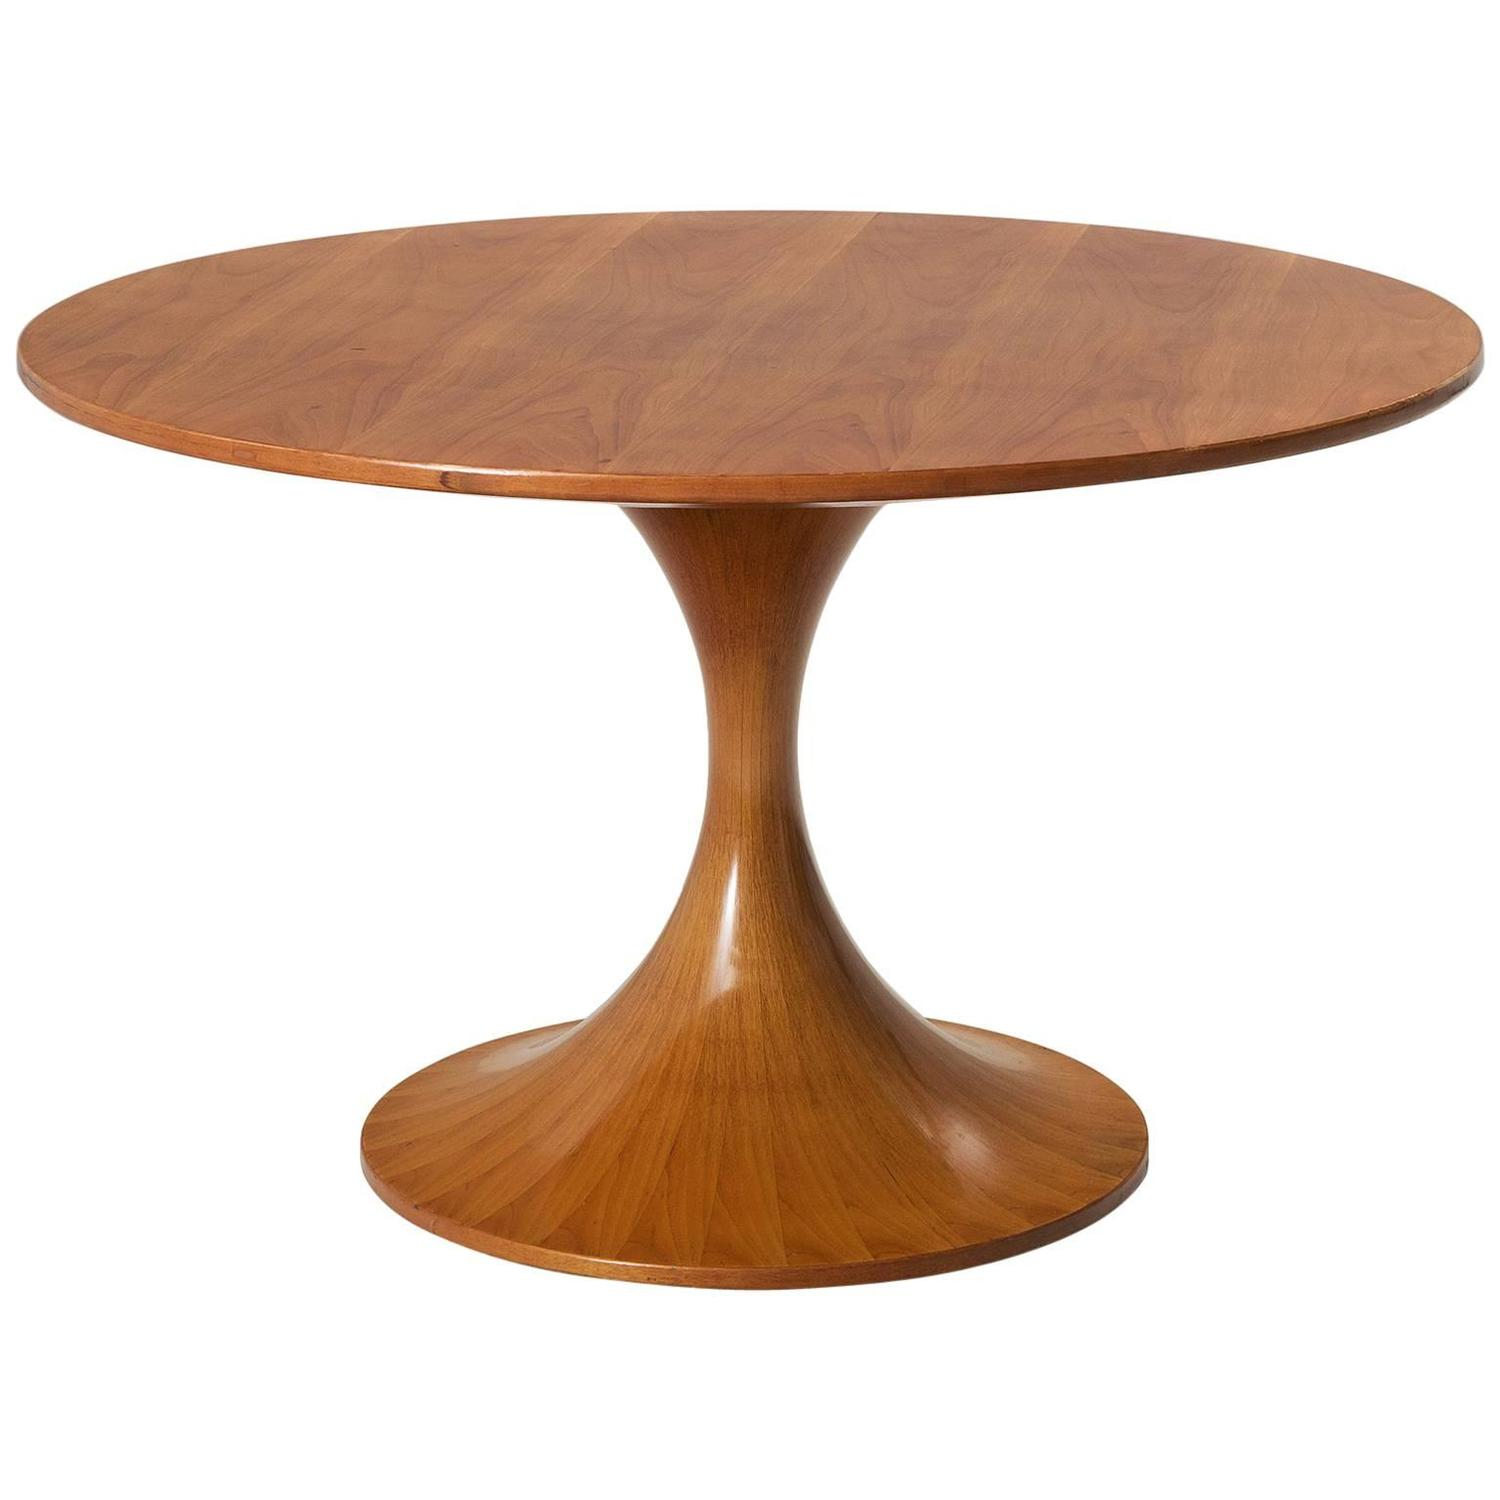 luigi massoni wooden round pedestal dining table for sale at 1stdibs. Black Bedroom Furniture Sets. Home Design Ideas